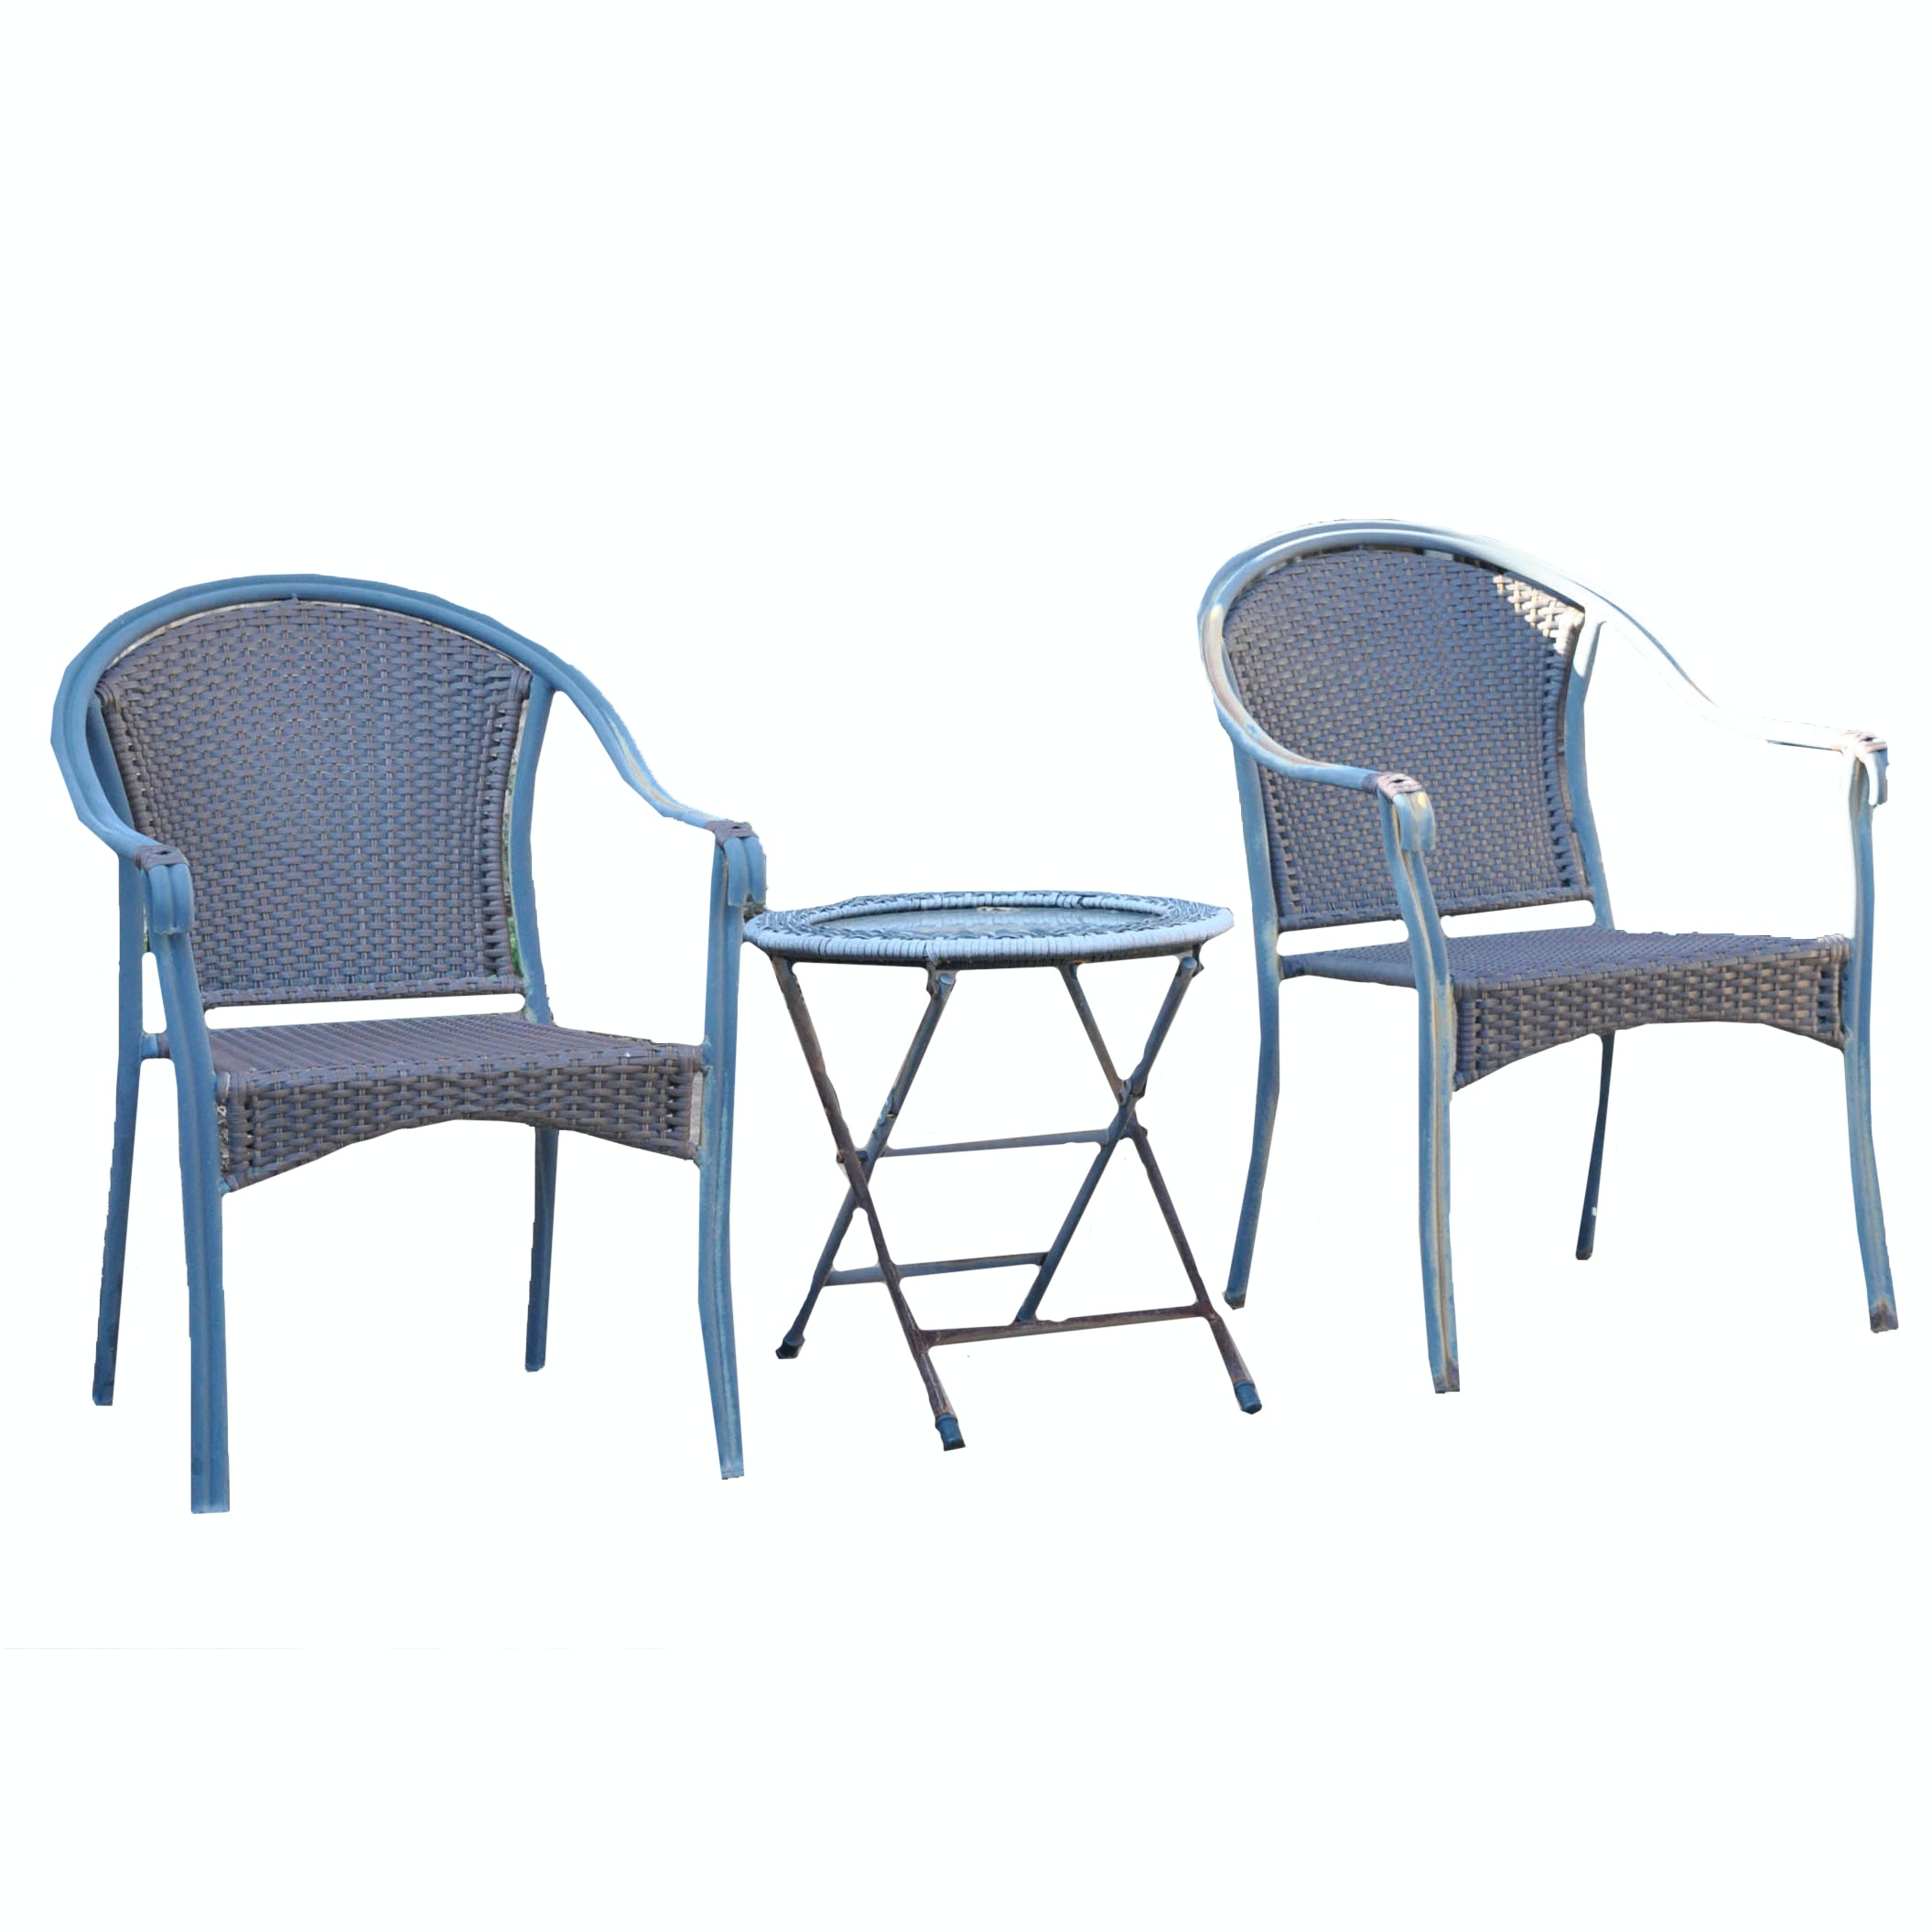 Patio Armchairs and Folding Side Table